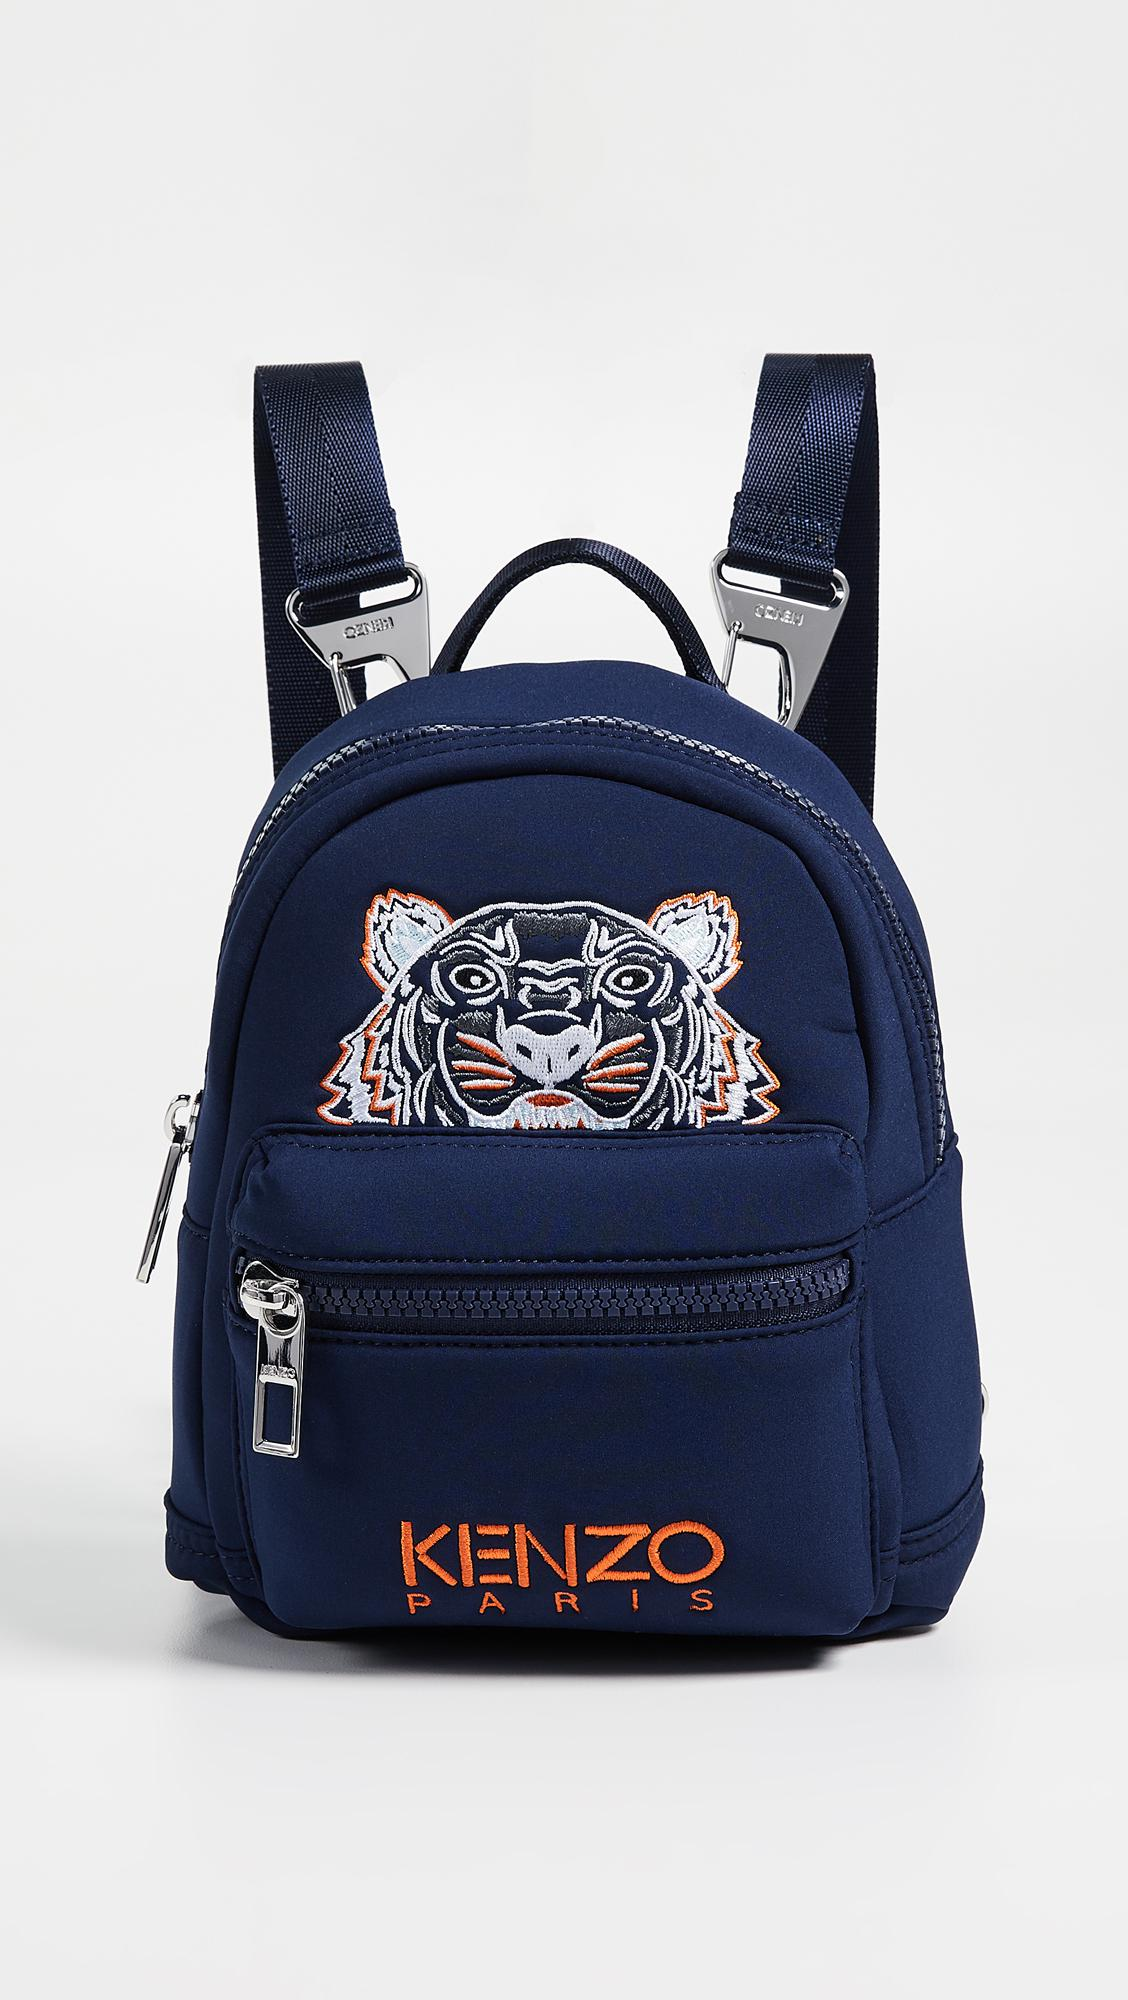 583dadca1c86 KENZO Mini Backpack in Blue - Save 1% - Lyst